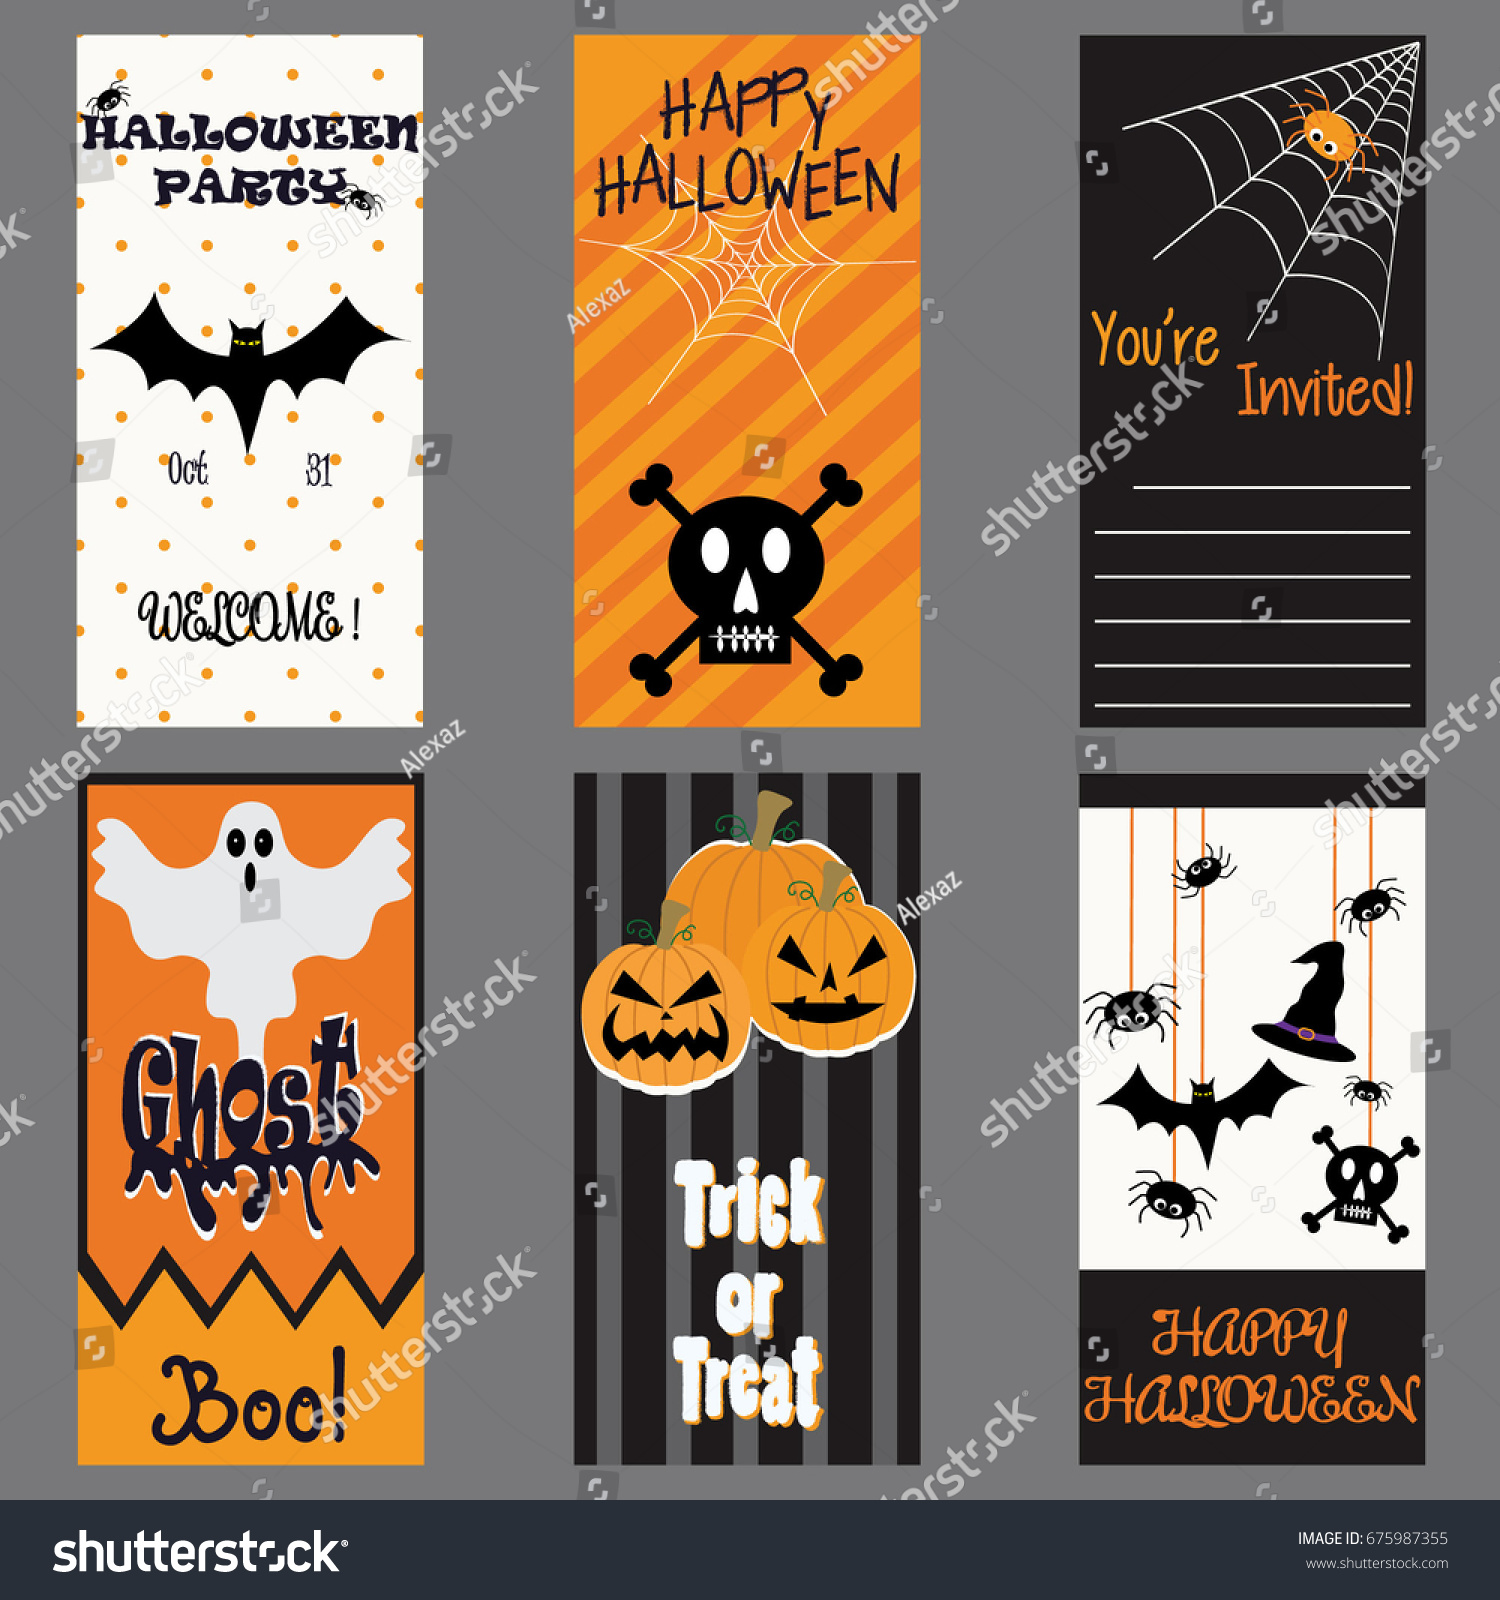 Happy Halloween Invitation Cardhalloween Party Card Vector – Welcome Party Invitation Cards